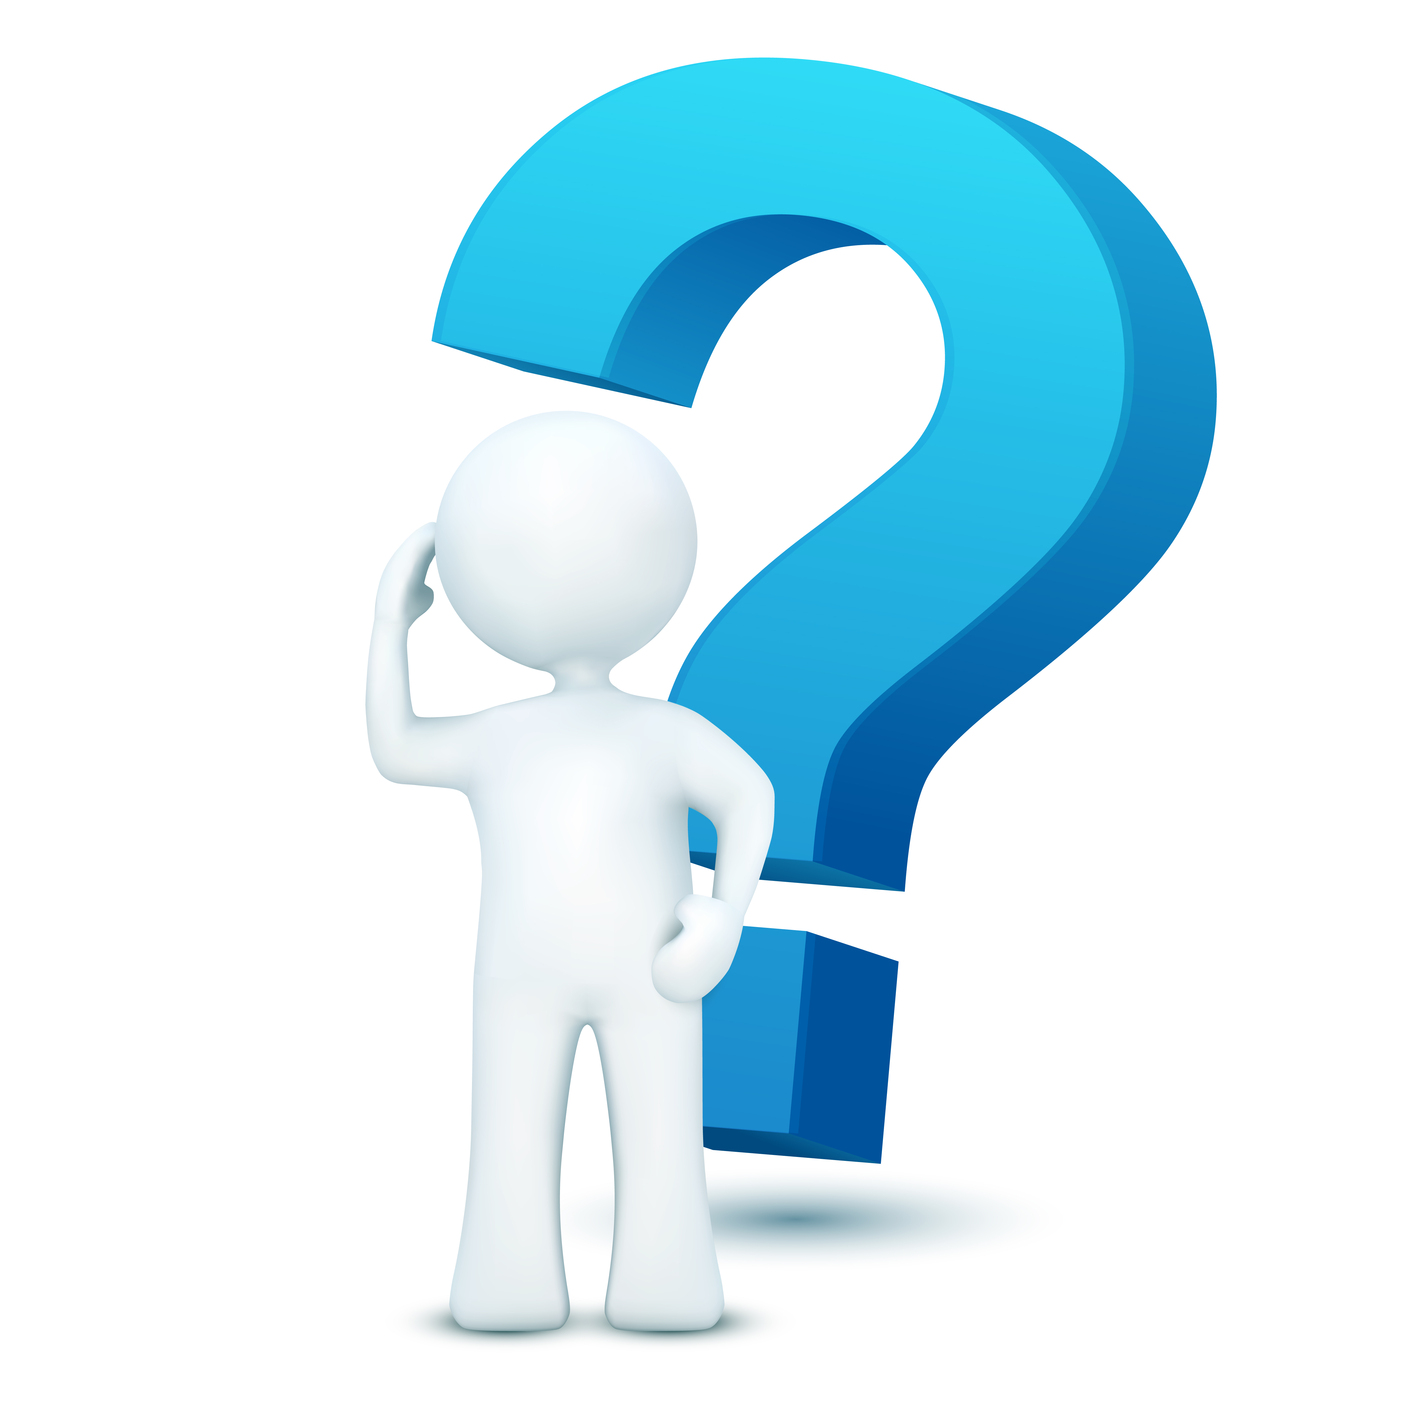 Free Questions Clipart, Download Free Clip Art, Free Clip.